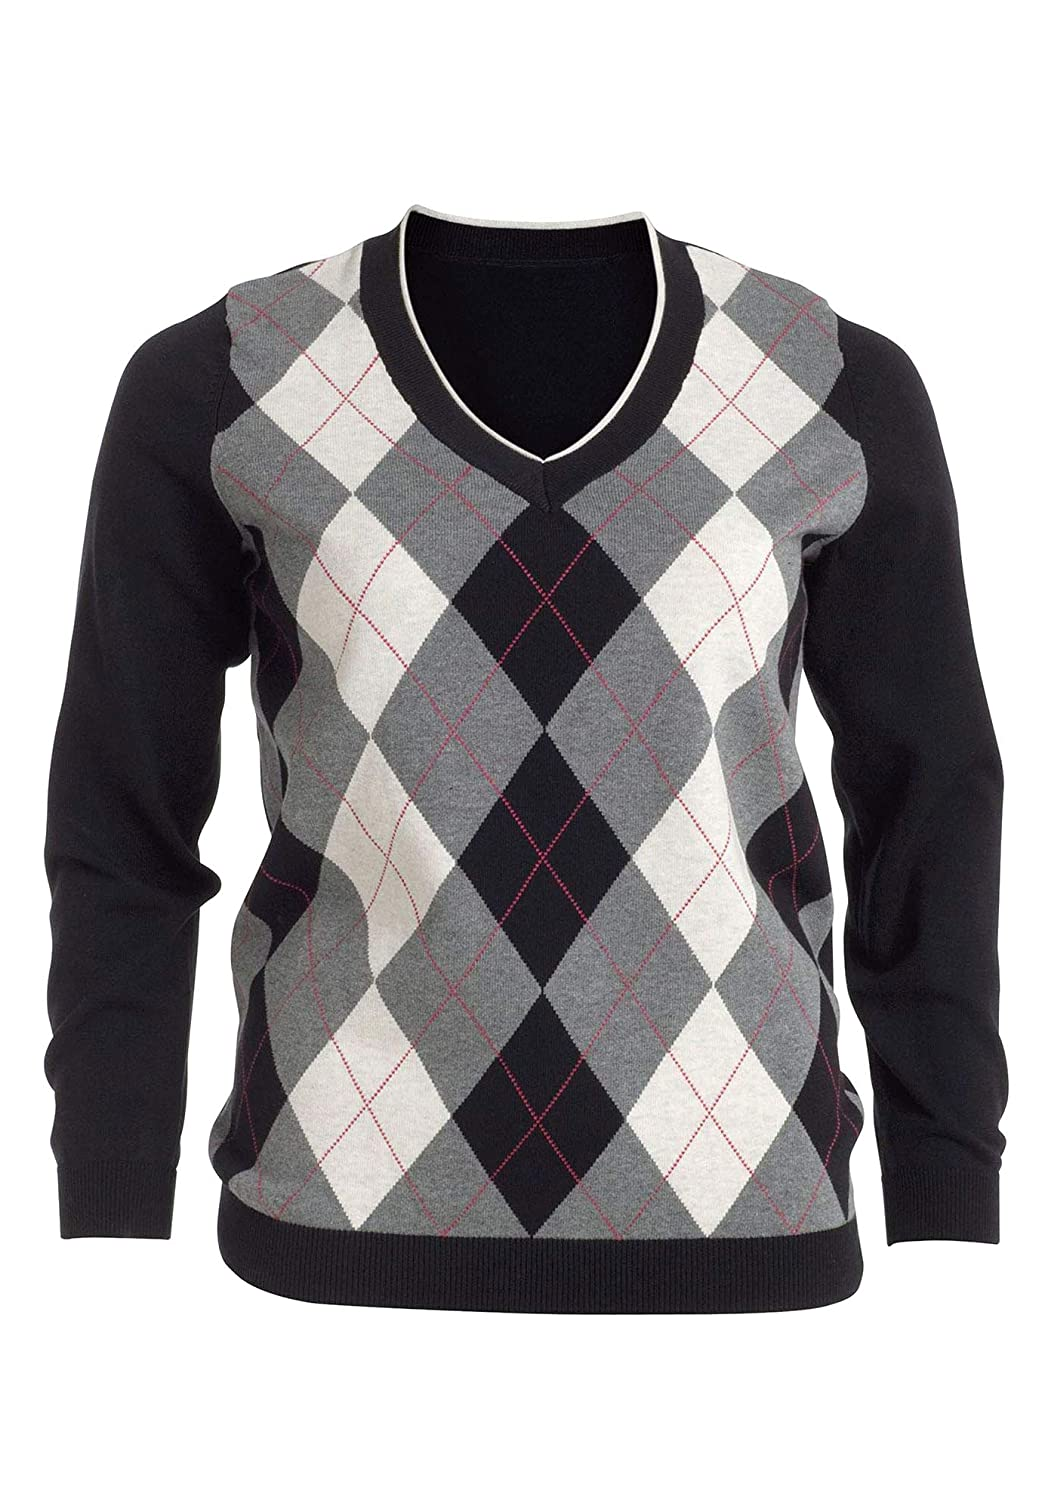 Ladies Colorful 1920s Sweaters and Cardigans History ellos Womens Plus Size V-Neck Argyle Sweater $46.32 AT vintagedancer.com